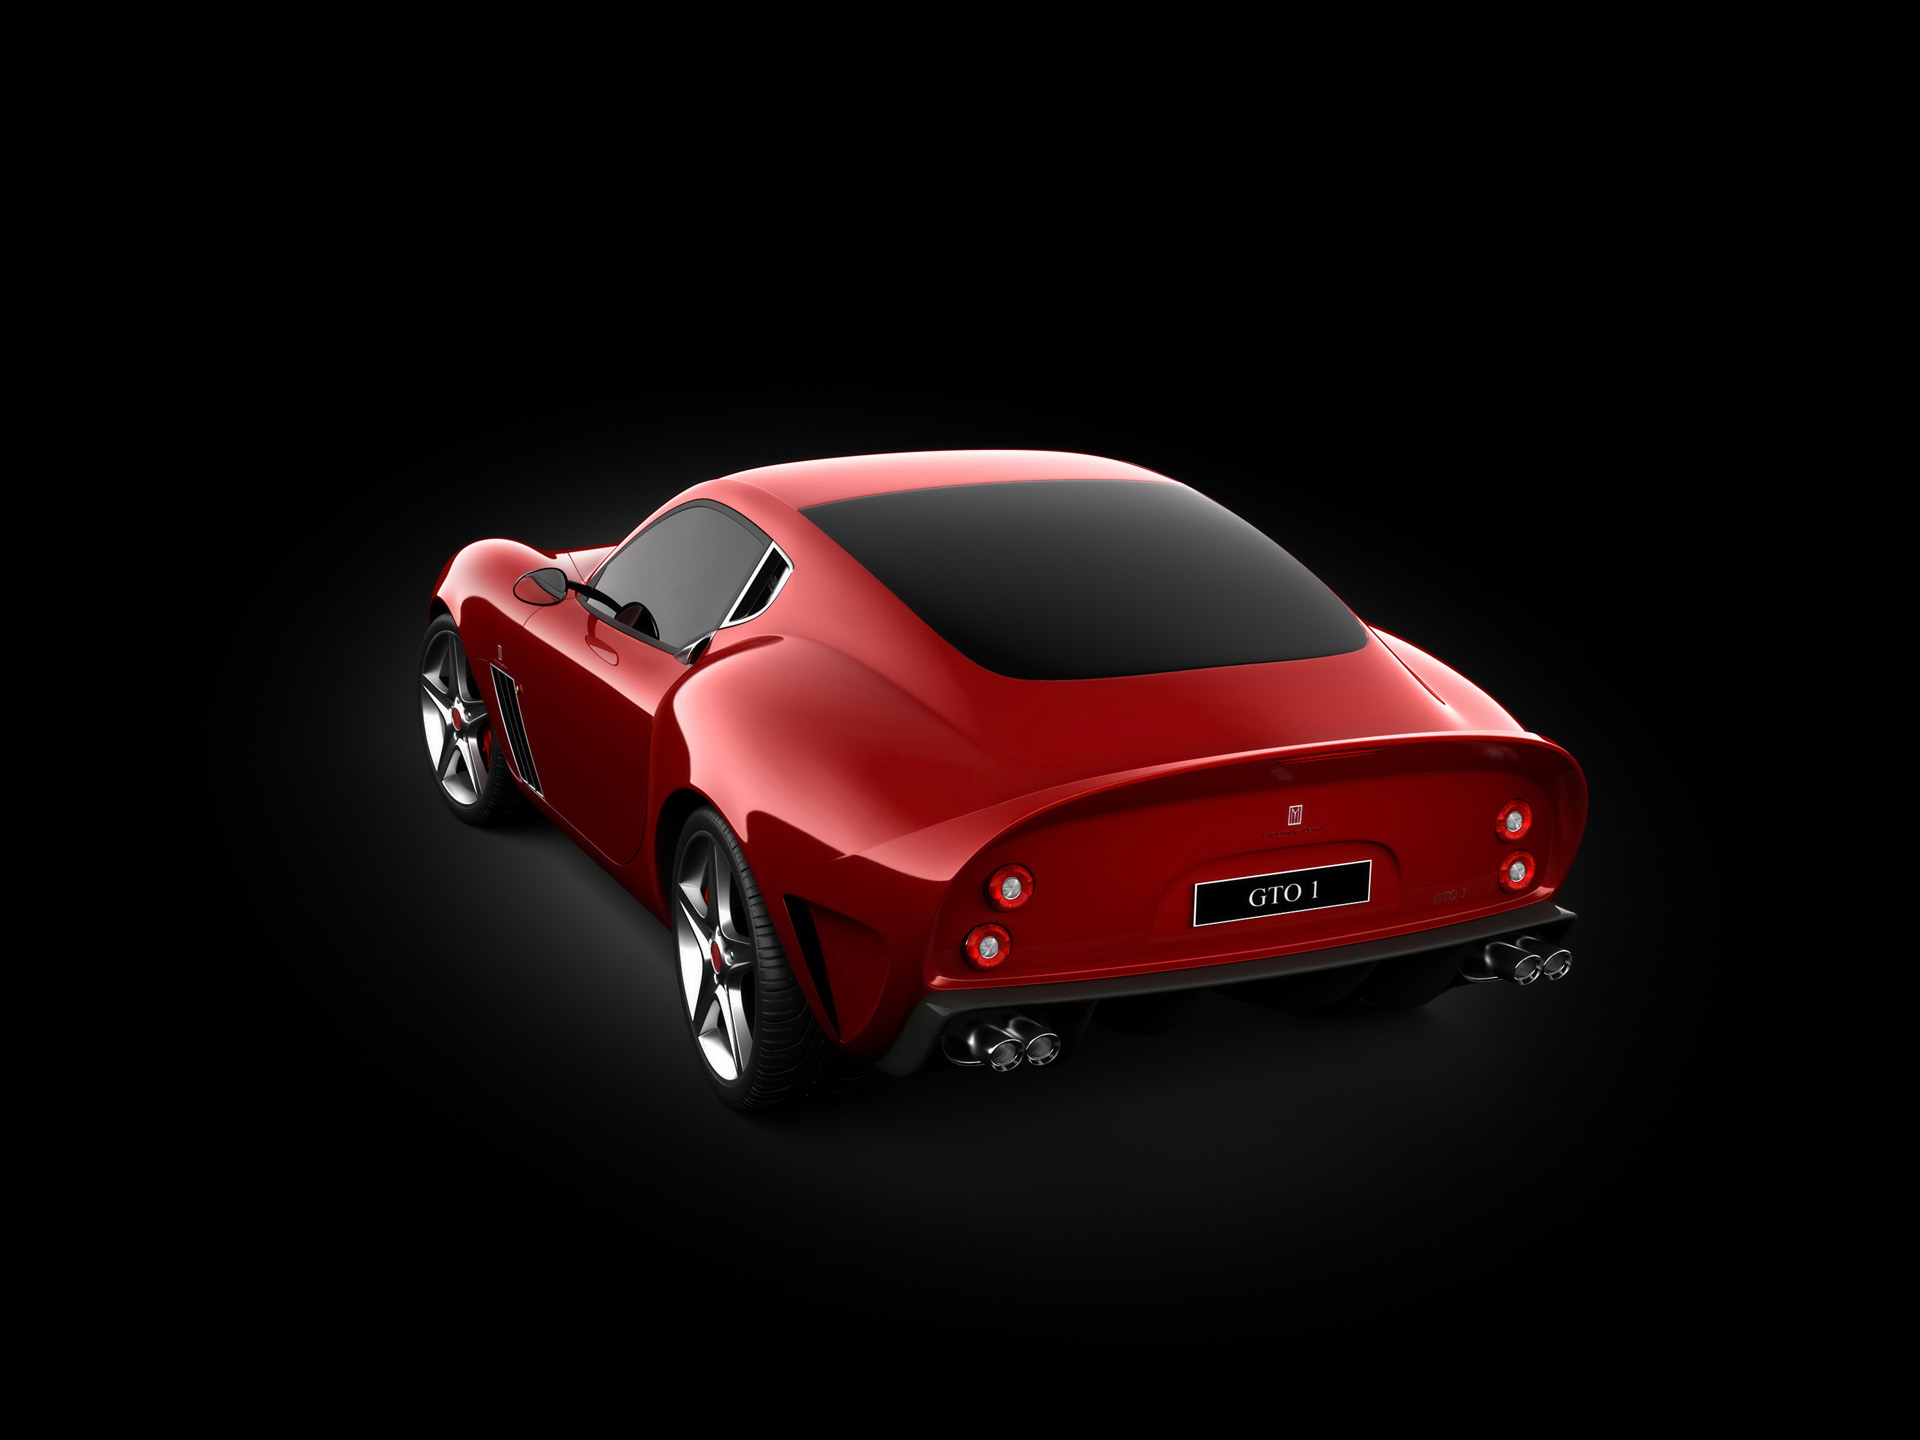 Vandenbrink Ferrari 599 GTO photo 48447